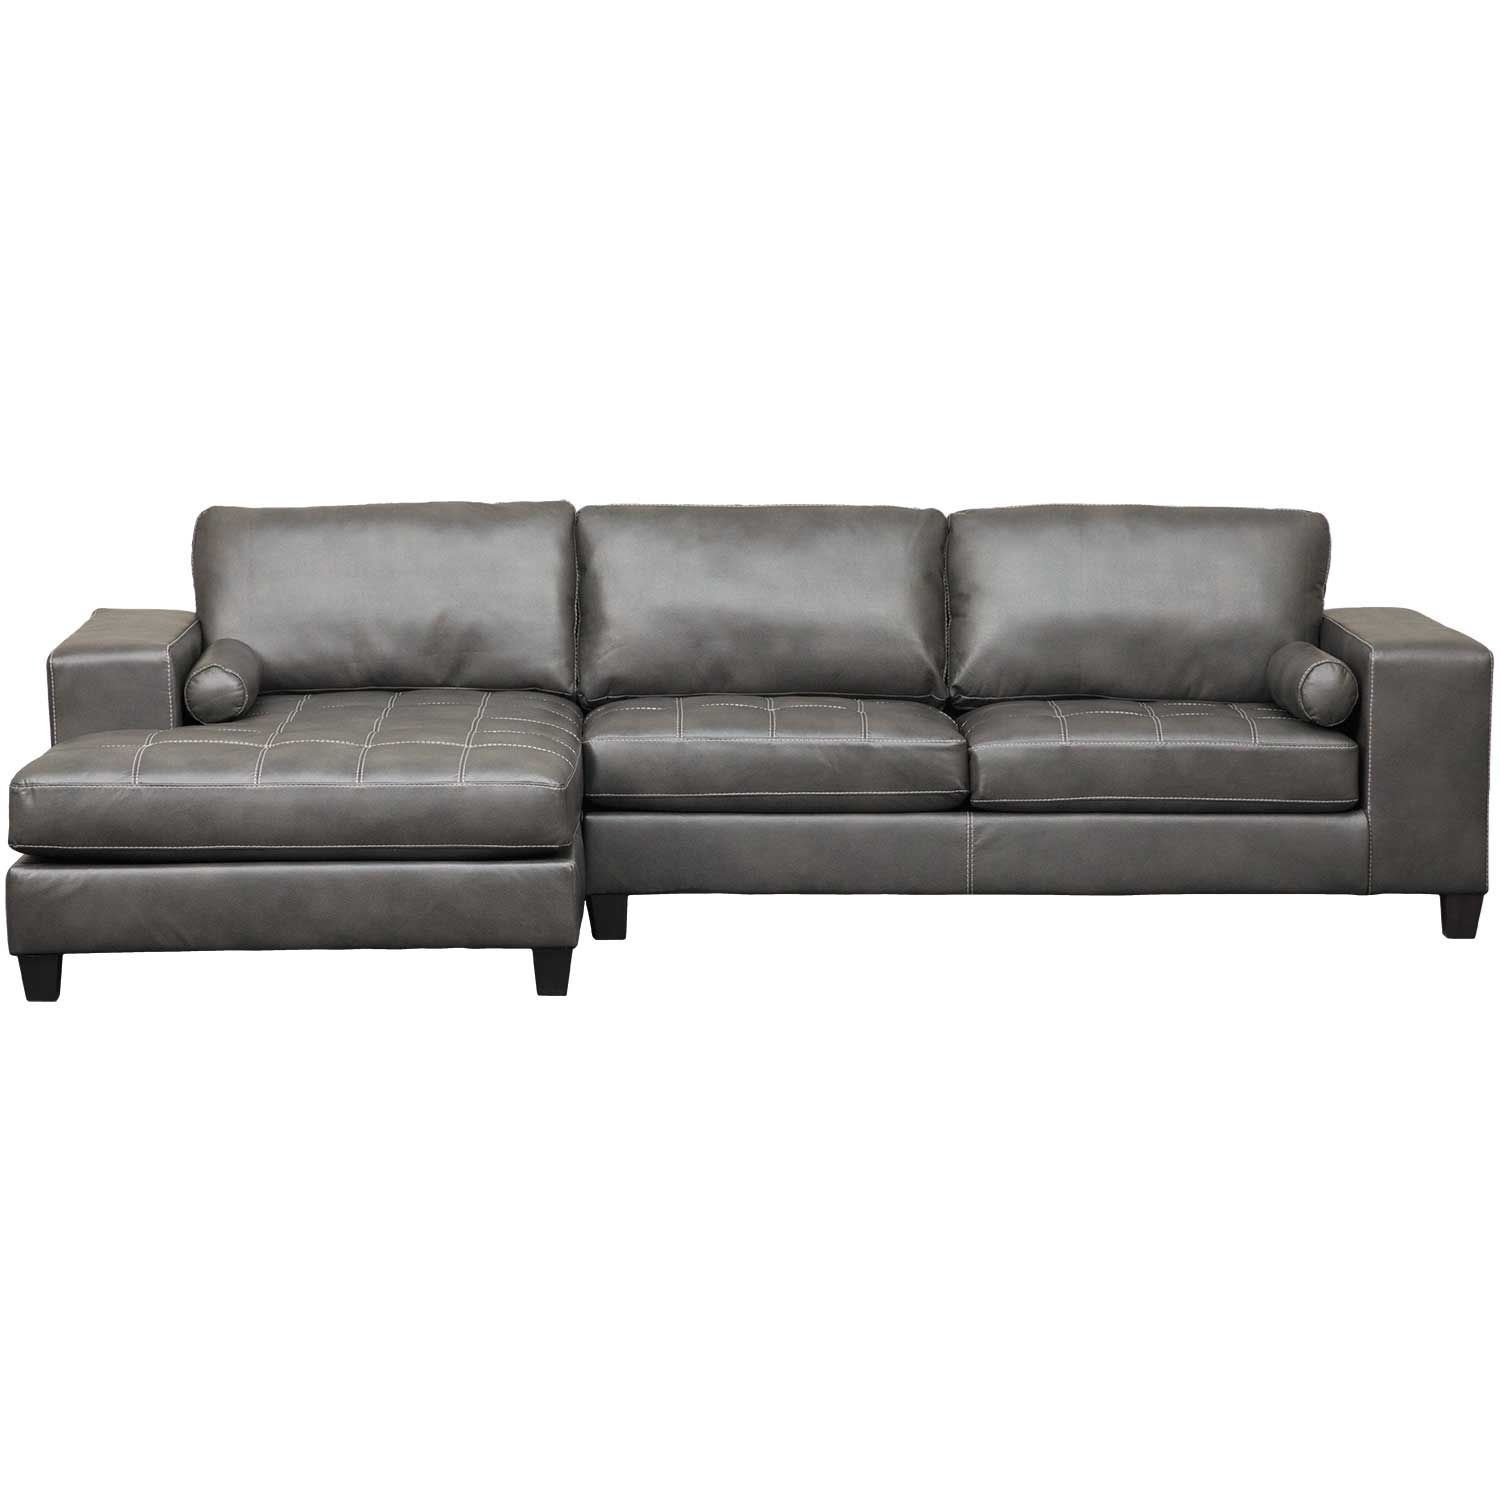 Nokomis 2 Piece Sectional With Laf Chaise | 8770116/8770167 | Ashley Pertaining To Cosmos Grey 2 Piece Sectionals With Laf Chaise (Photo 10 of 30)